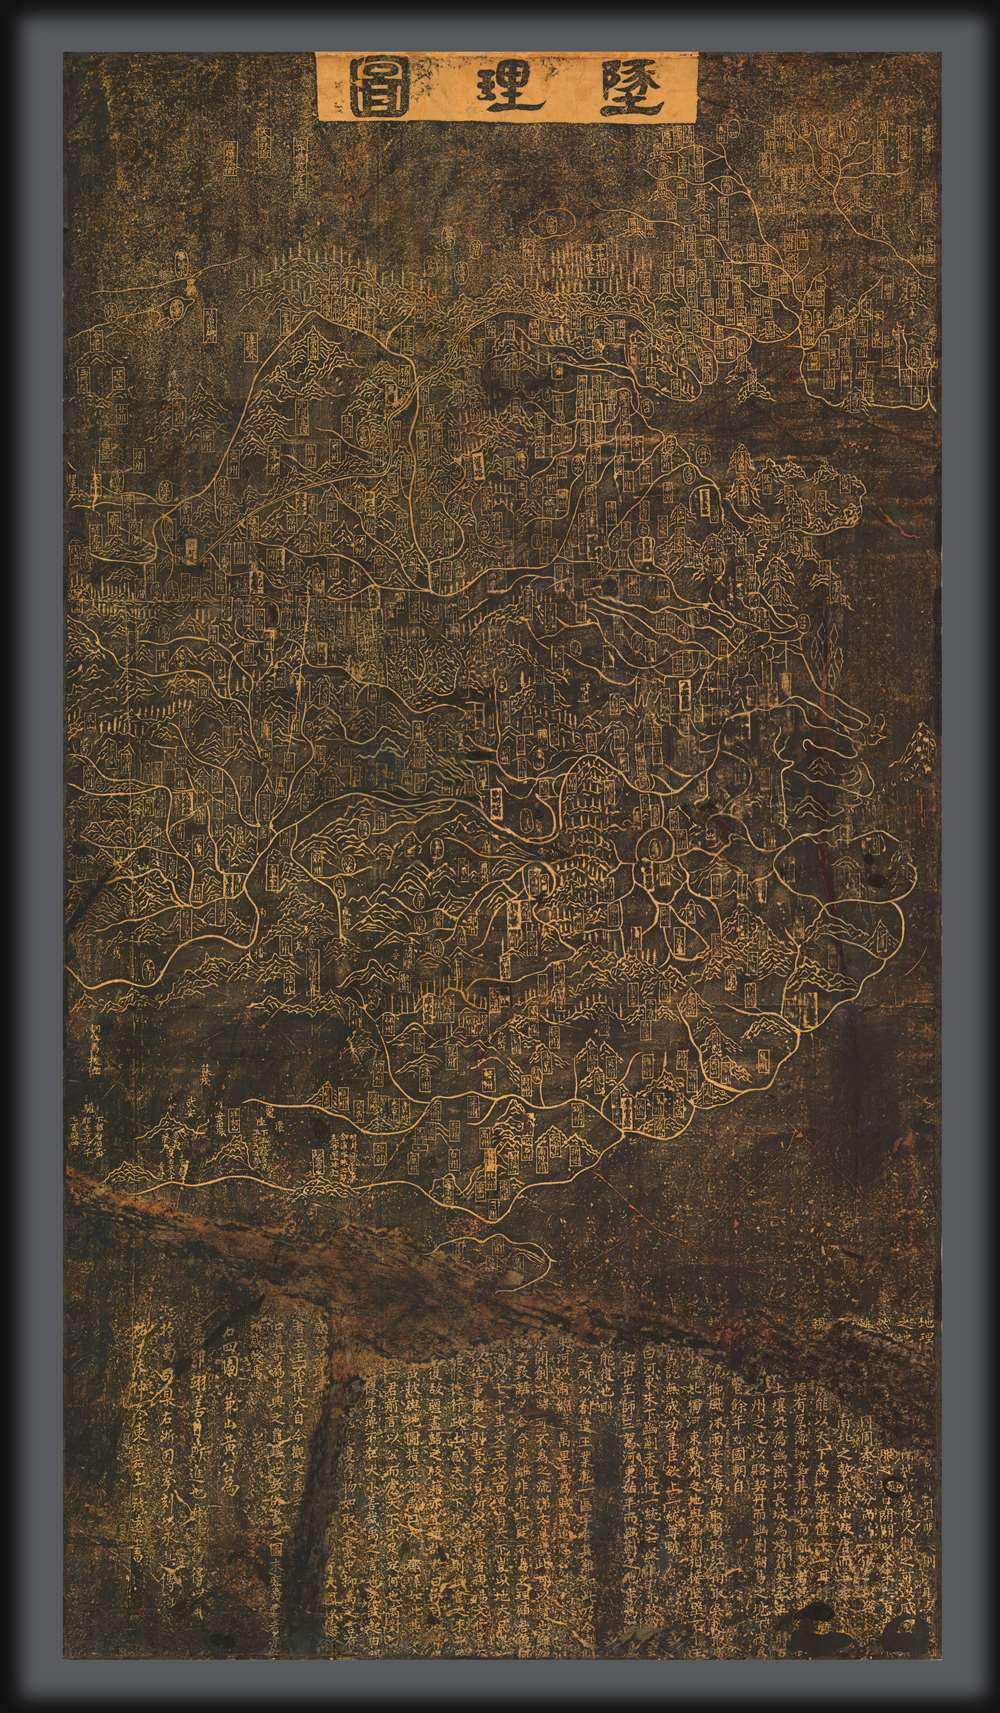 1247 Huang Shang 'Dili Tu' Map of China - earliest Map of China!